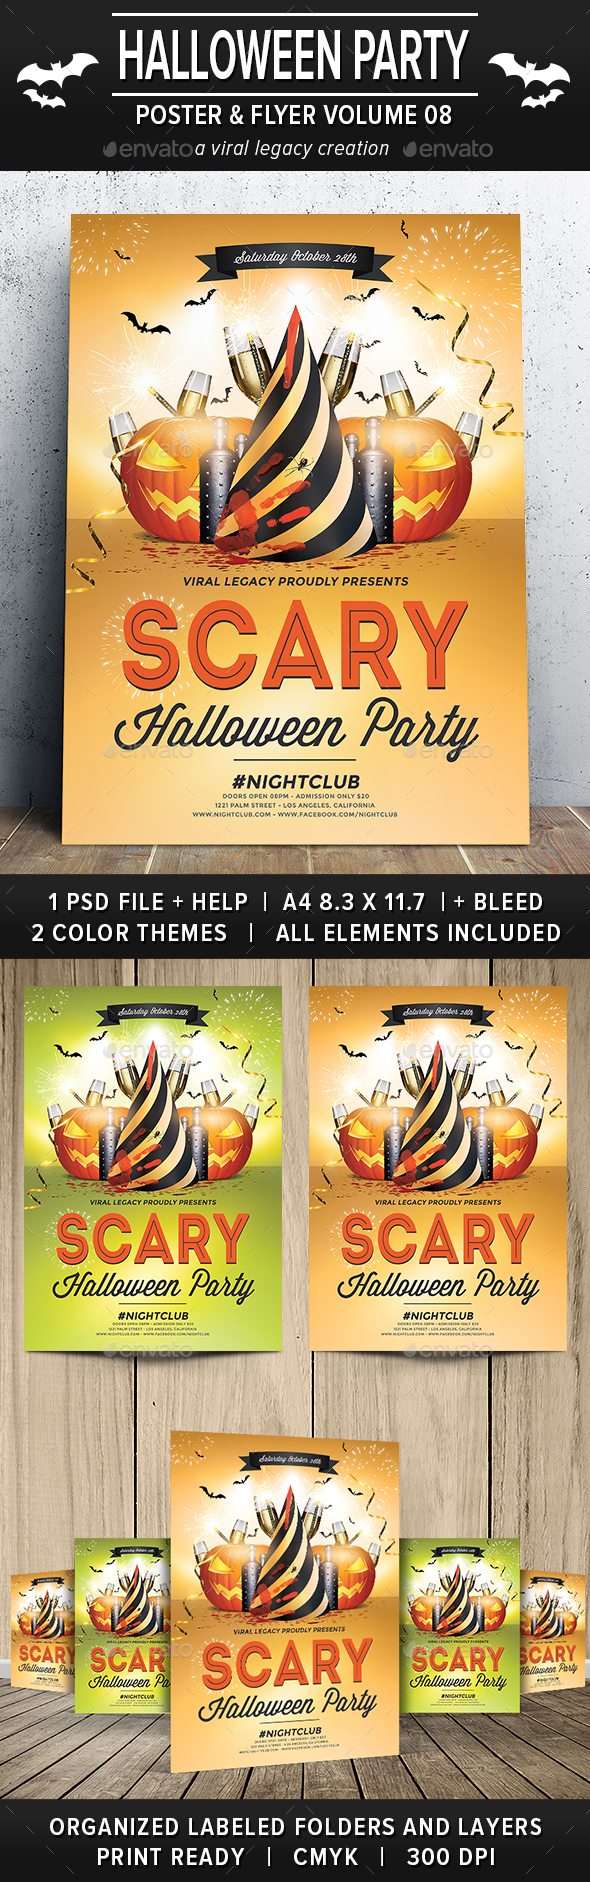 Halloween Party Poster / Flyer V08